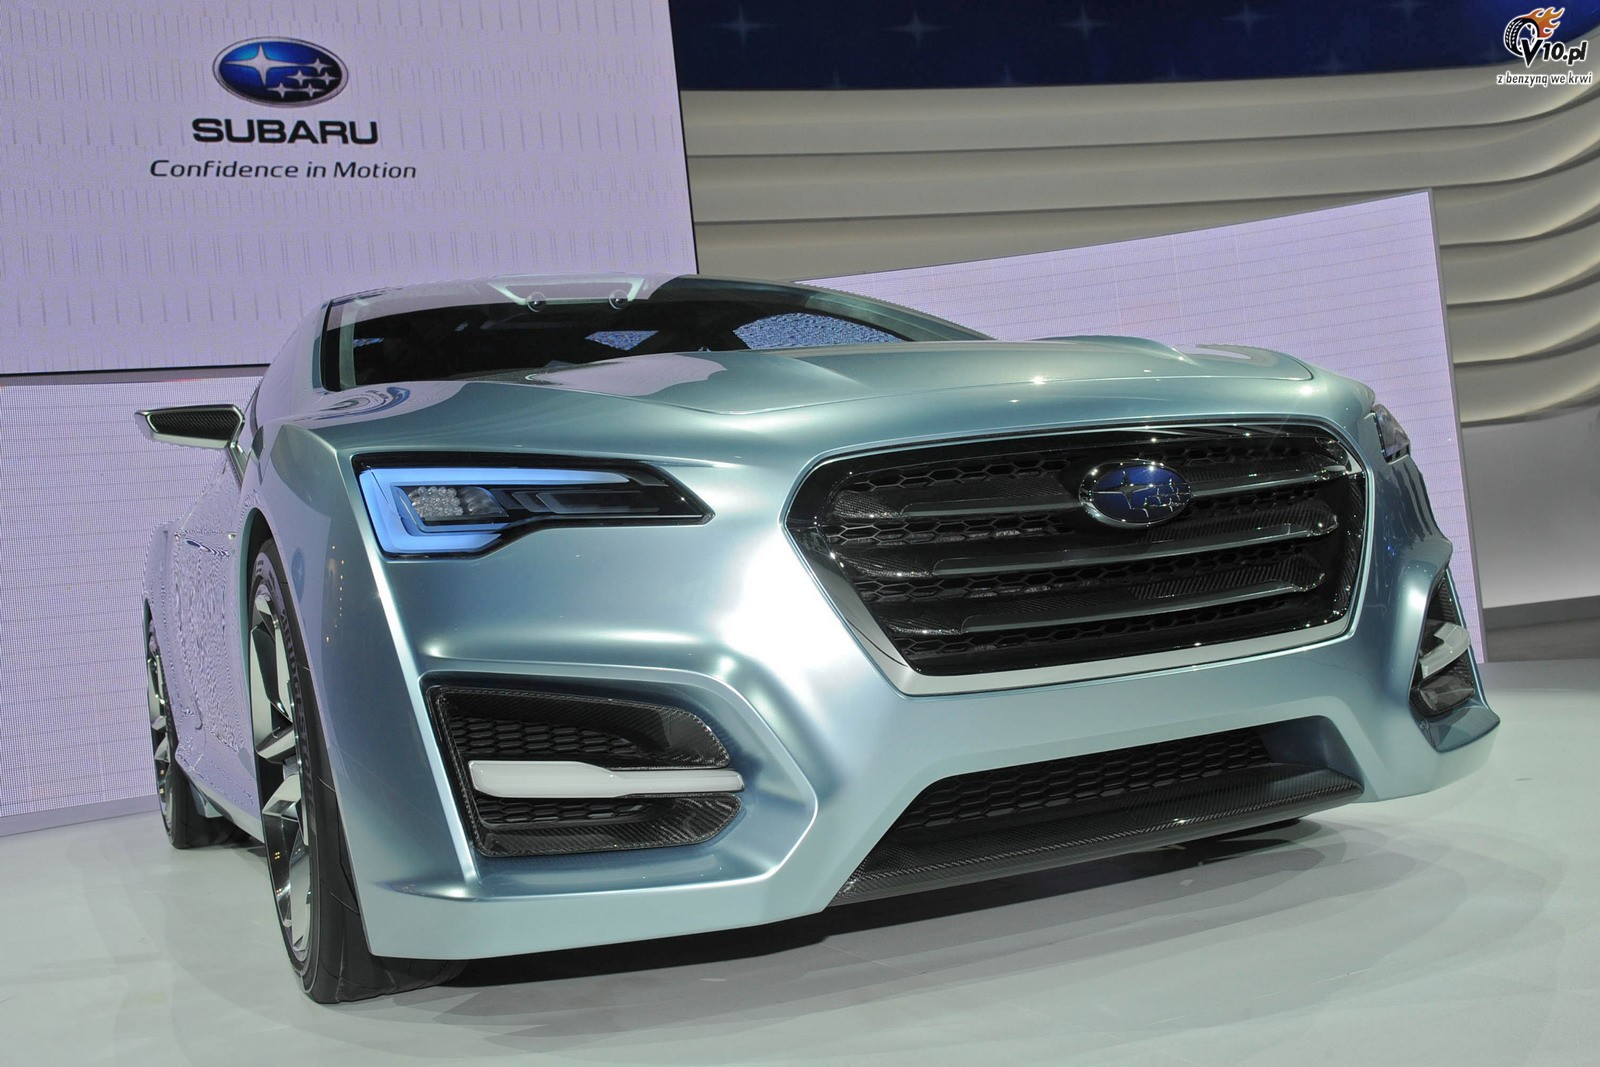 2019 Subaru Advanced Tourer Concept photo - 2